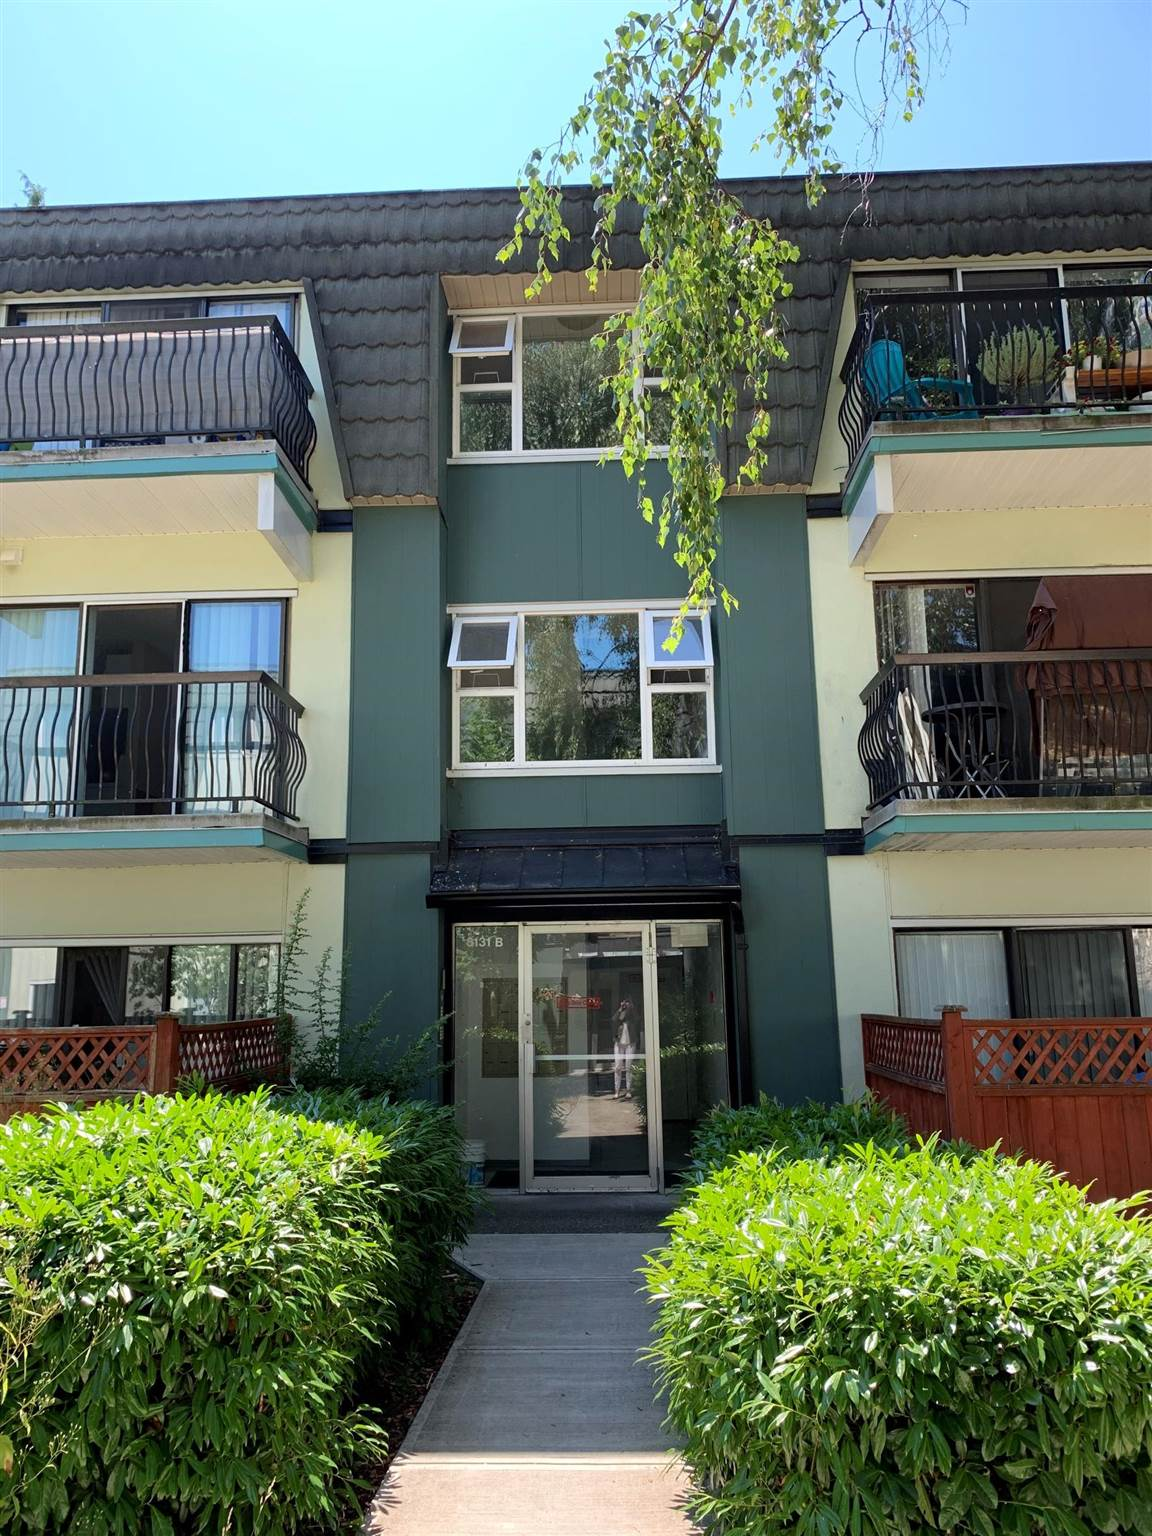 This lovely unit in well managed Mayfair Court has 2 bedrooms, one bath and a southern exposed private patio.  Located in an ideal location, it is close to Richlea/Broadmoor Shopping Centre, South Arm Community Centre, public transportation and Bridge Elementary and McRoberts Secondary Schools.  This tranquil unit is ideal for homeowners or investors as there are no rental restrictions and the maintenance fee of $608 per month includes, taxes, management and utilities such as heat and hot water.  Book an appointment to see this great opportunity to own a home!